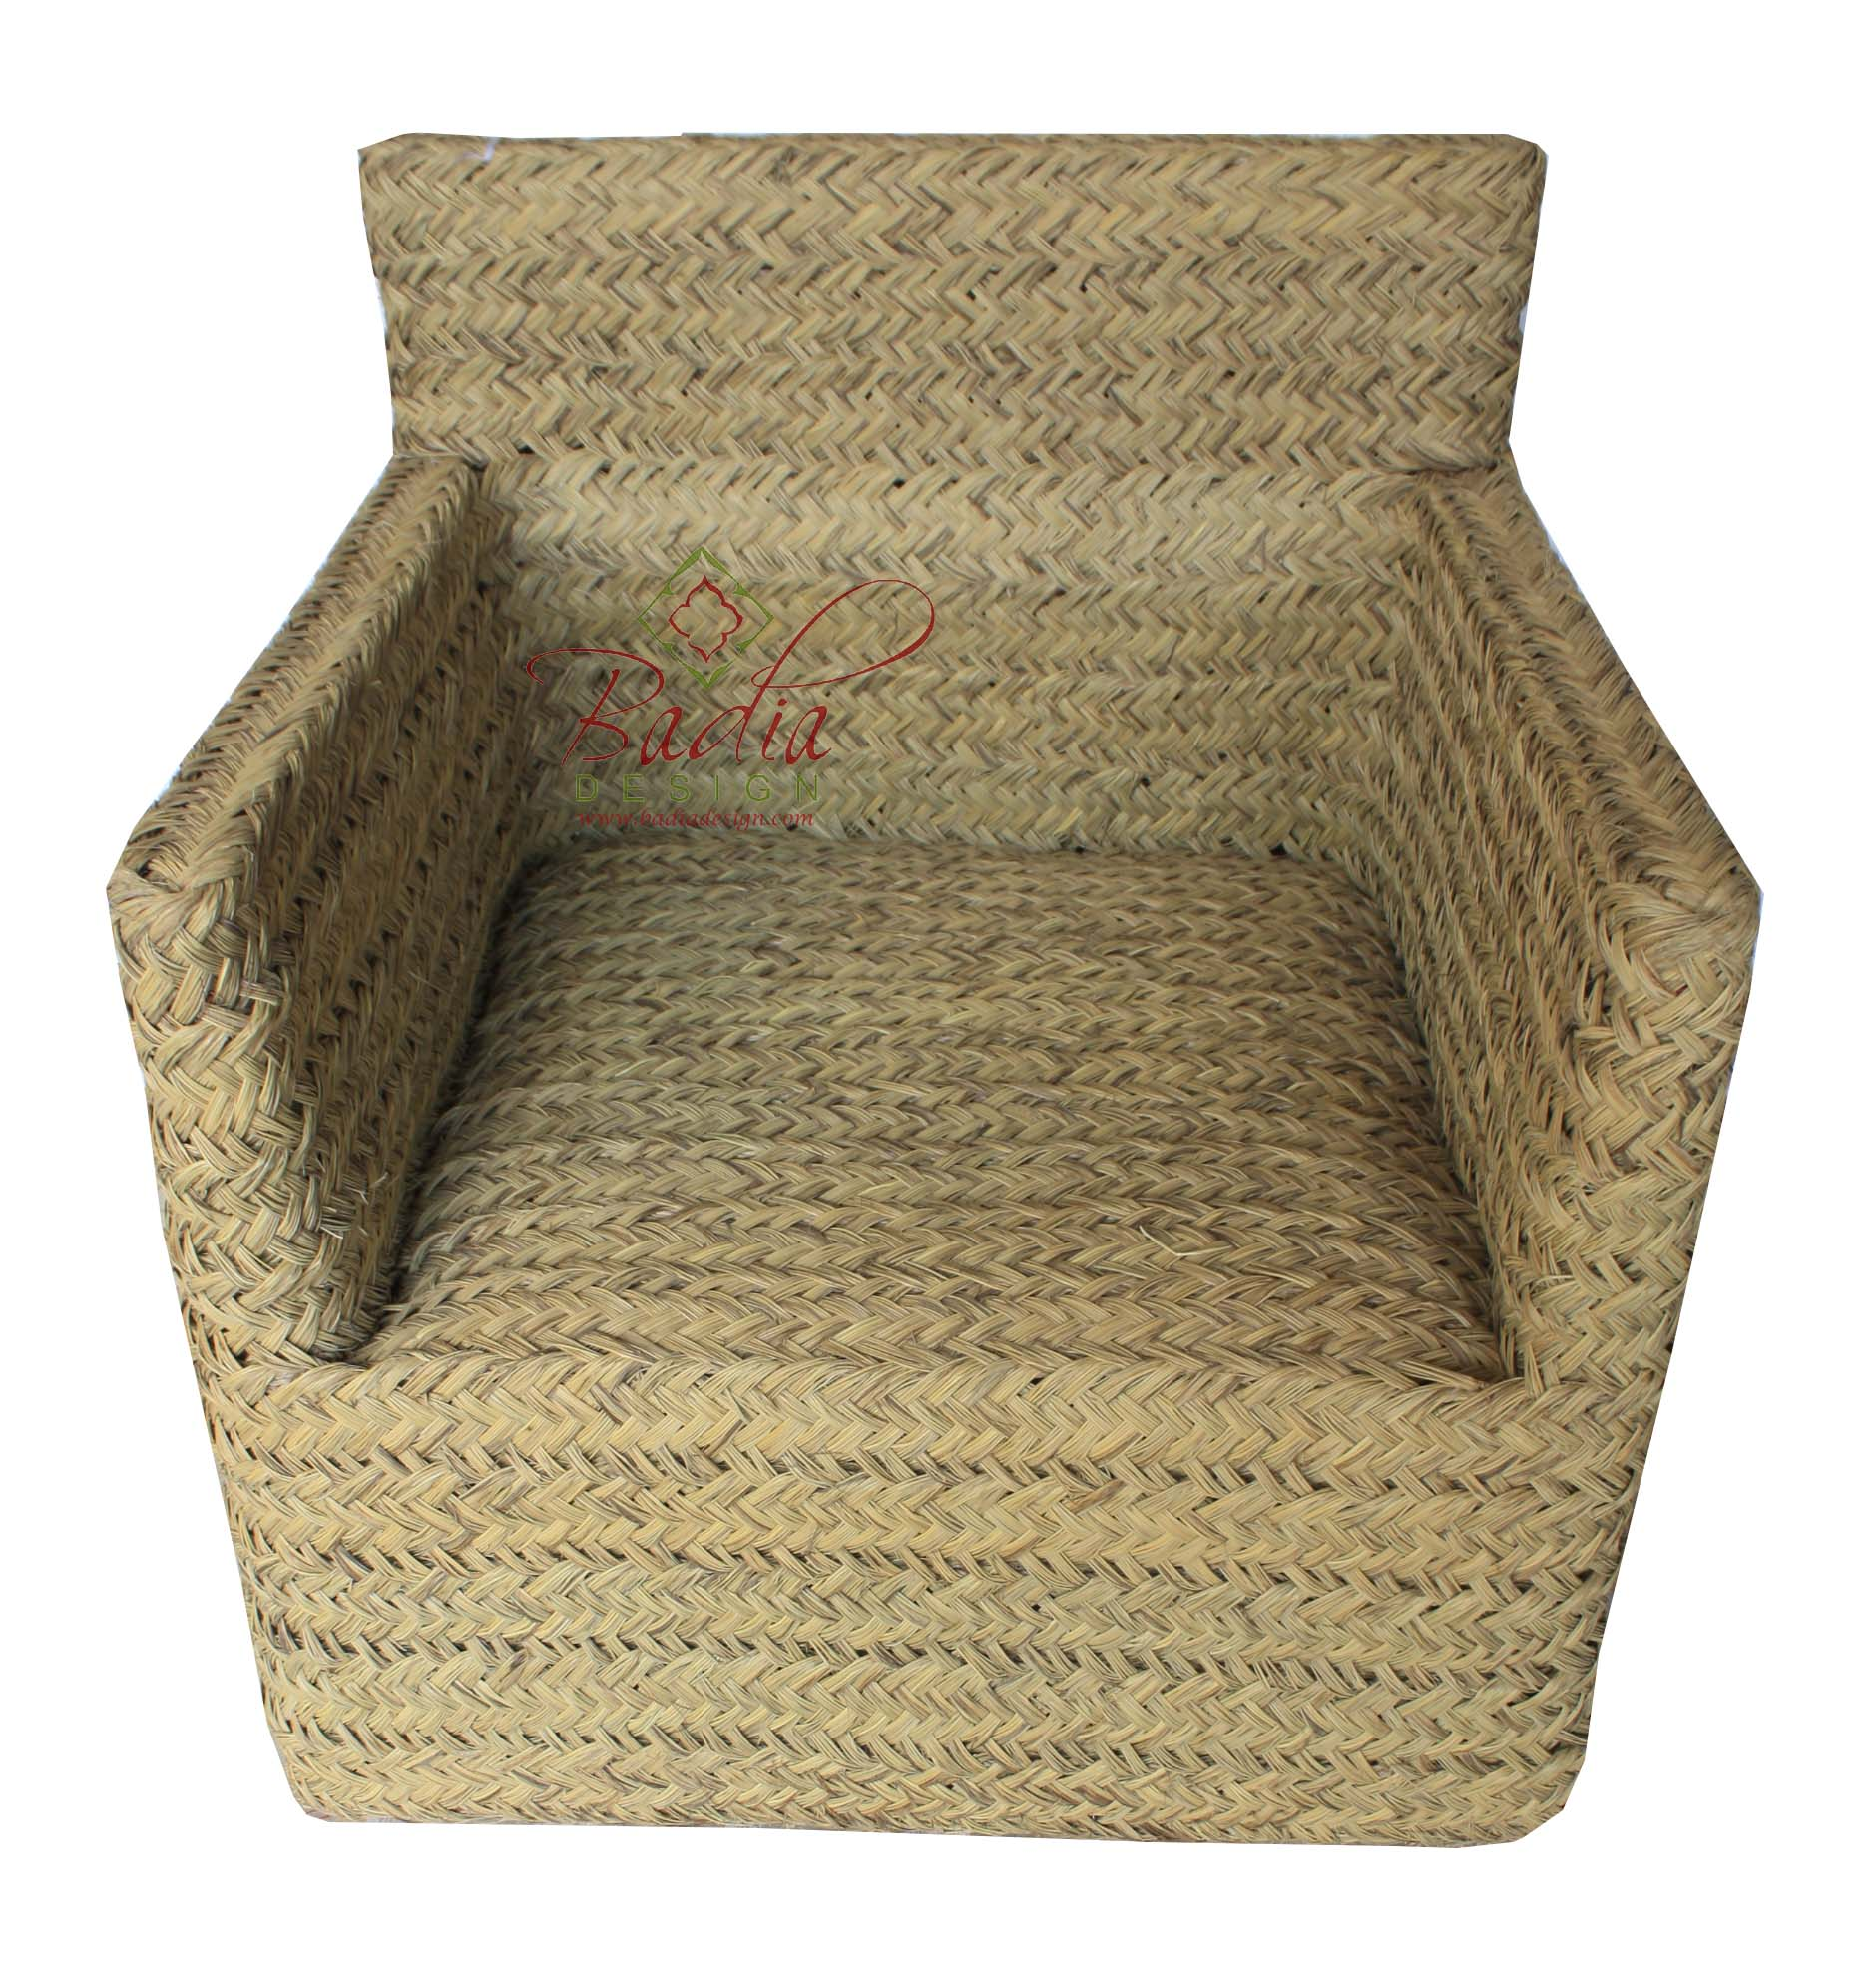 moroccan-indoor-straw-chair-cw-ch018-1.jpg